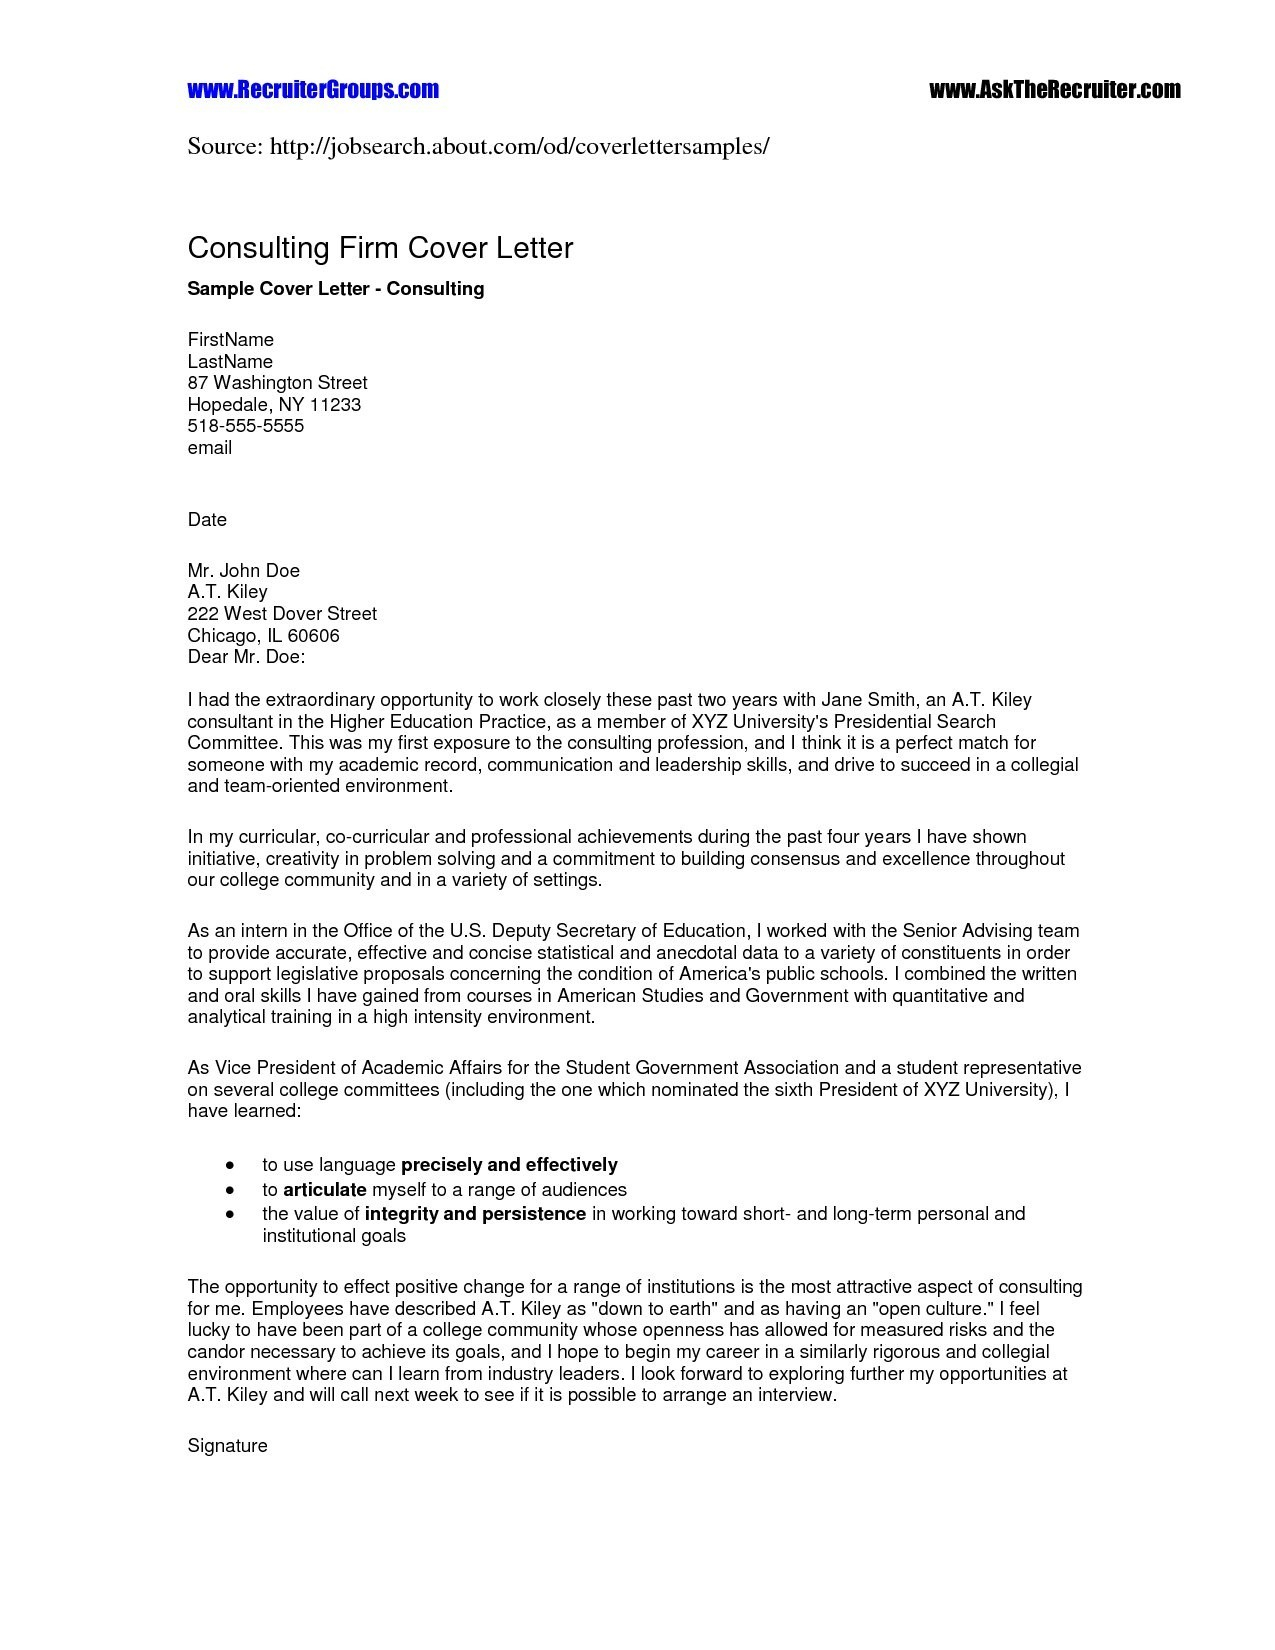 Business Plan Cover Letter Template Samples Letter Cover Templates